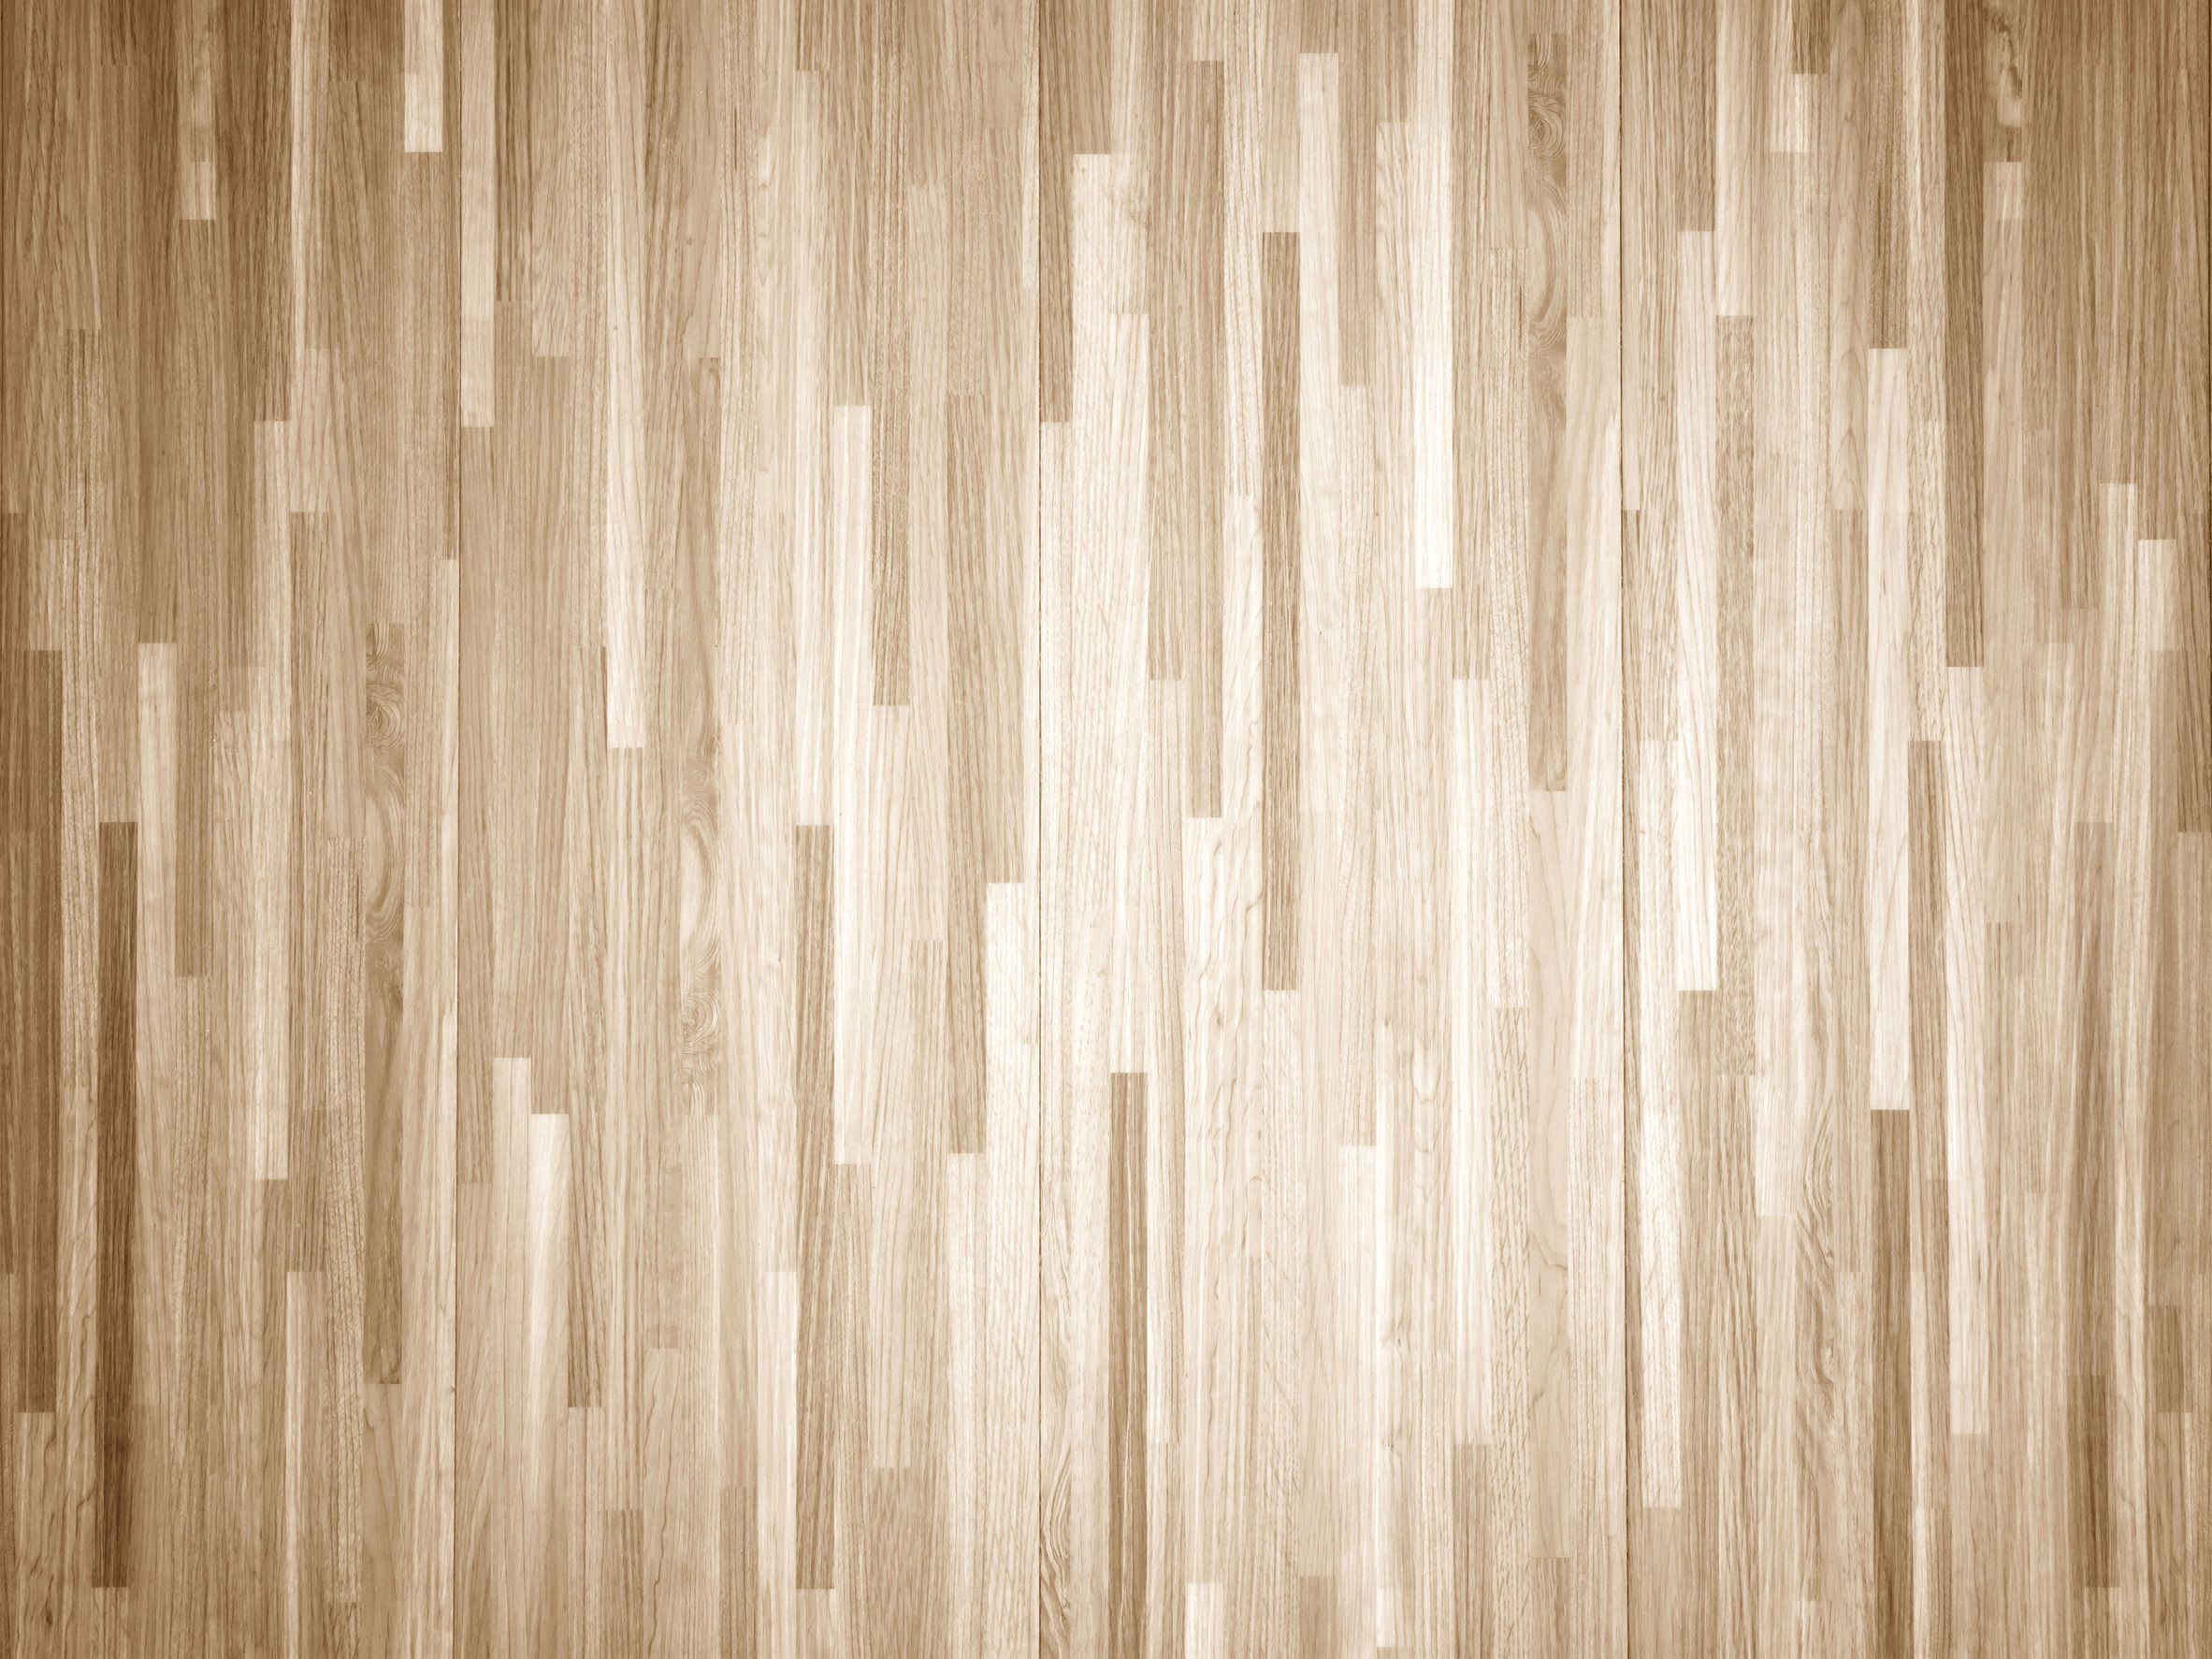 cost of sanding and finishing hardwood floors of how to chemically strip wood floors woodfloordoctor com regarding you